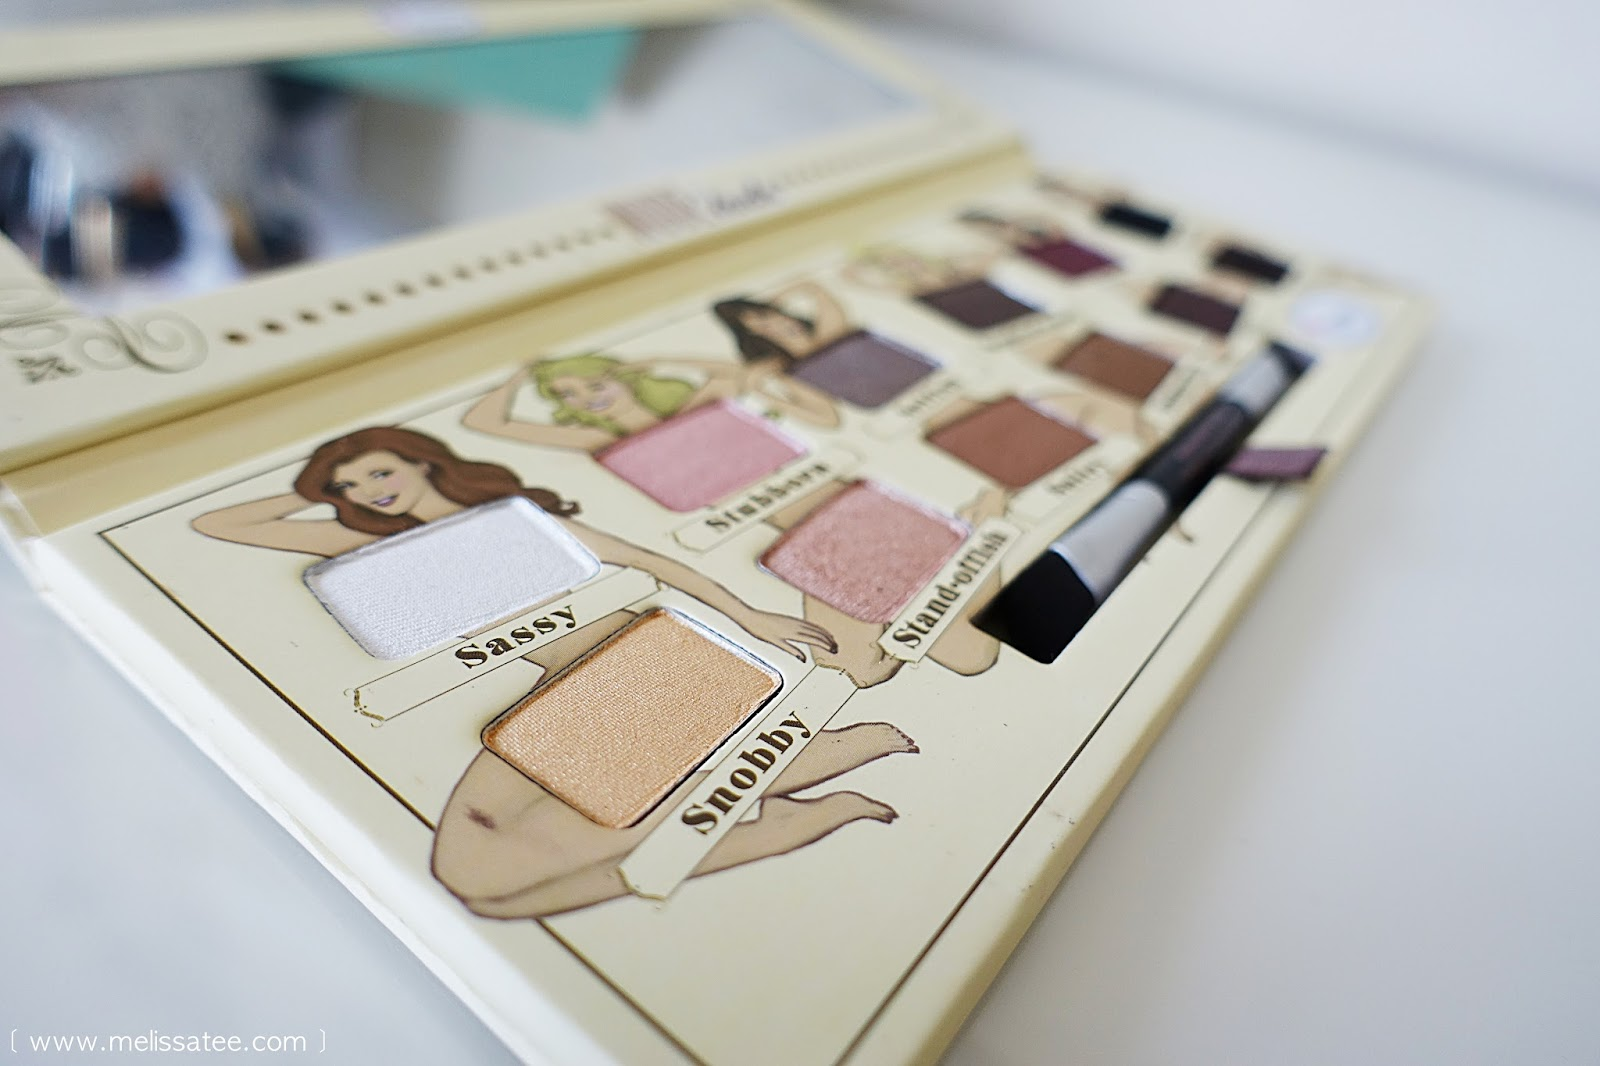 Nude Tude The Balm Review